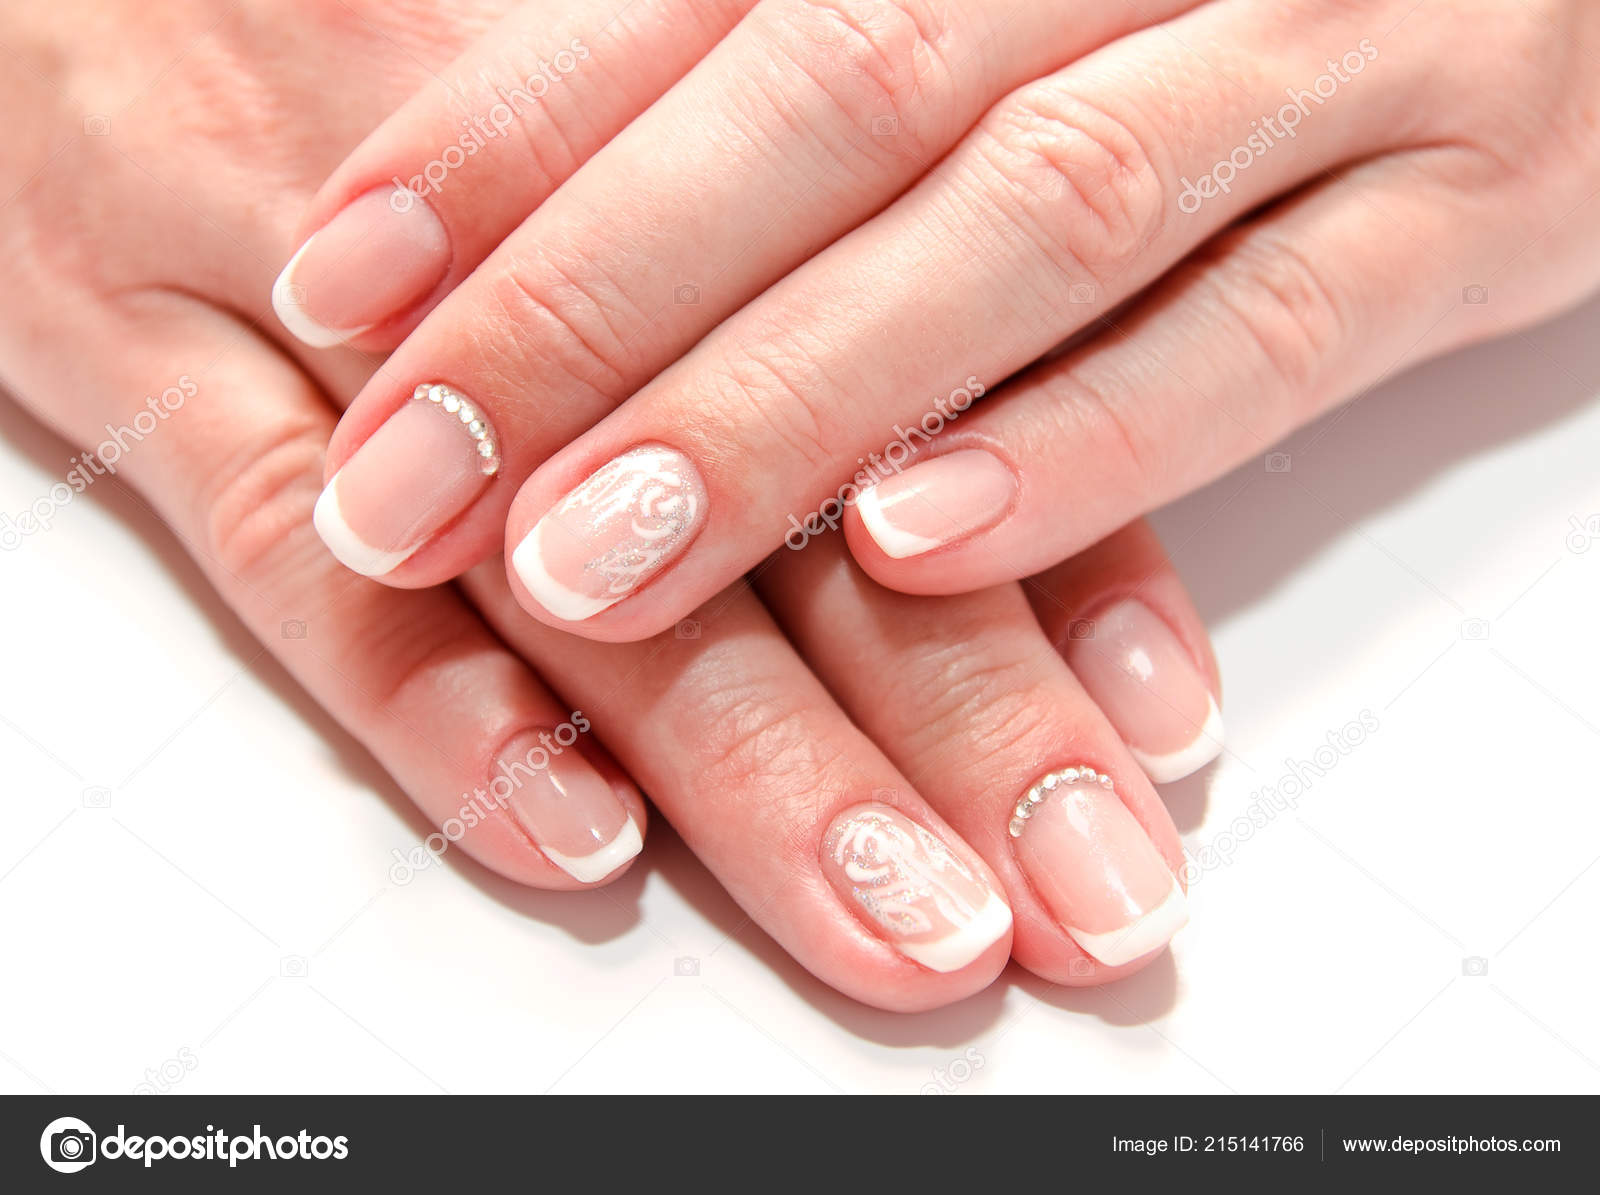 Pictures French Nails Woman Nails Beautiful French Manicure Fashion Design Gems Isolated White Stock Photo C Svetamart 215141766